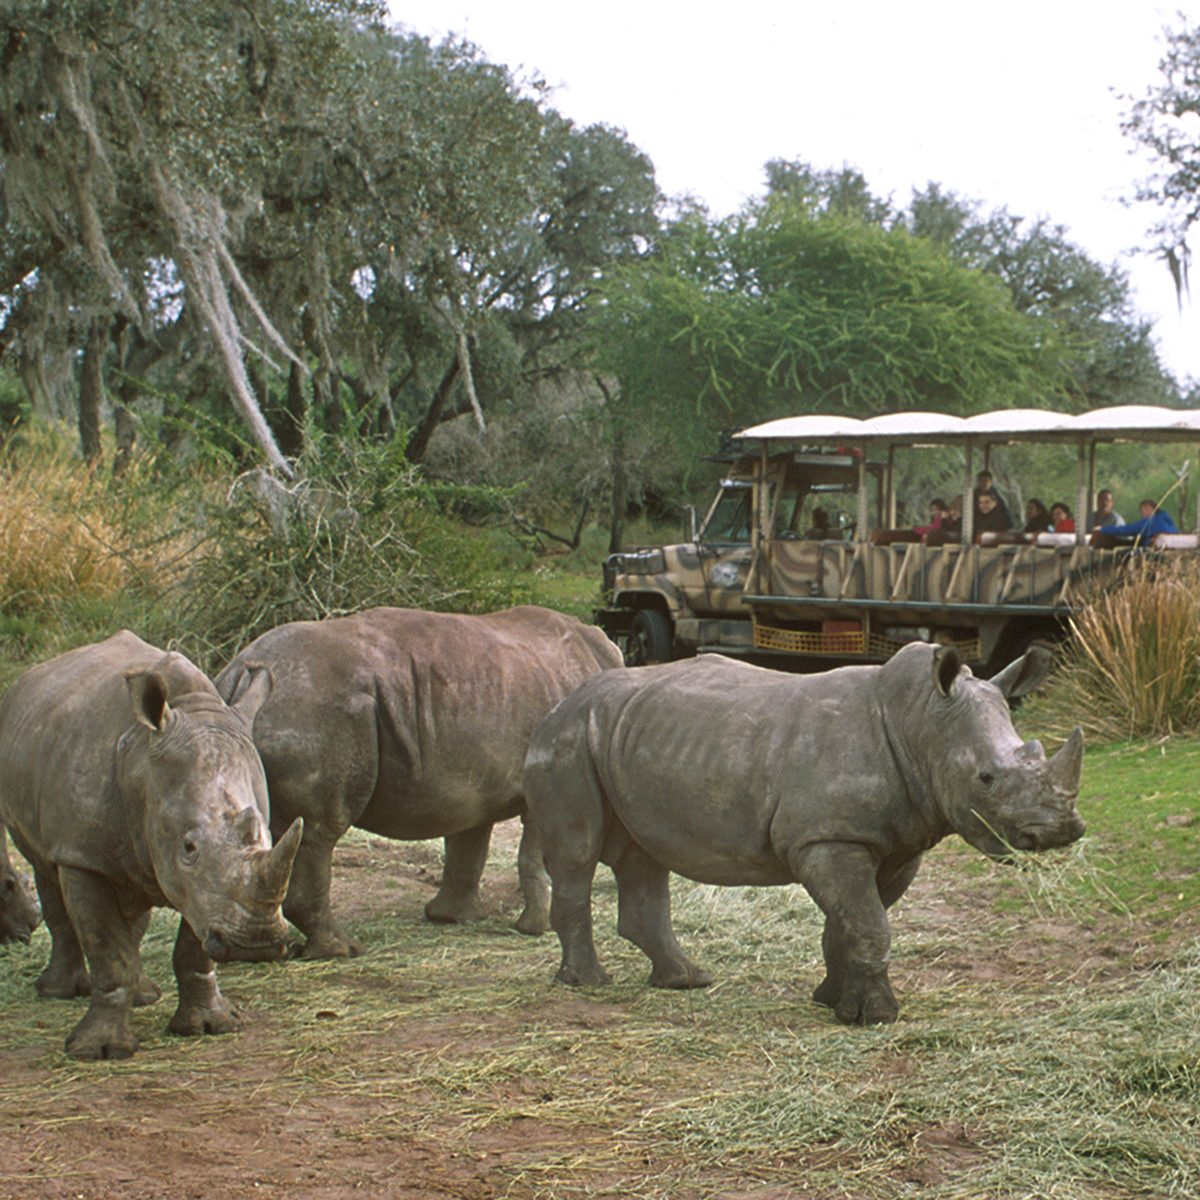 As visitors pass by on a 'safari' truck, a group of rhinoceroses wander the grounds of the Animal Kingdom Theme Park at Disneyworld, Orlando, Florida, August 2012. (Photo by Tom Nebbia/Corbis via Getty Images)